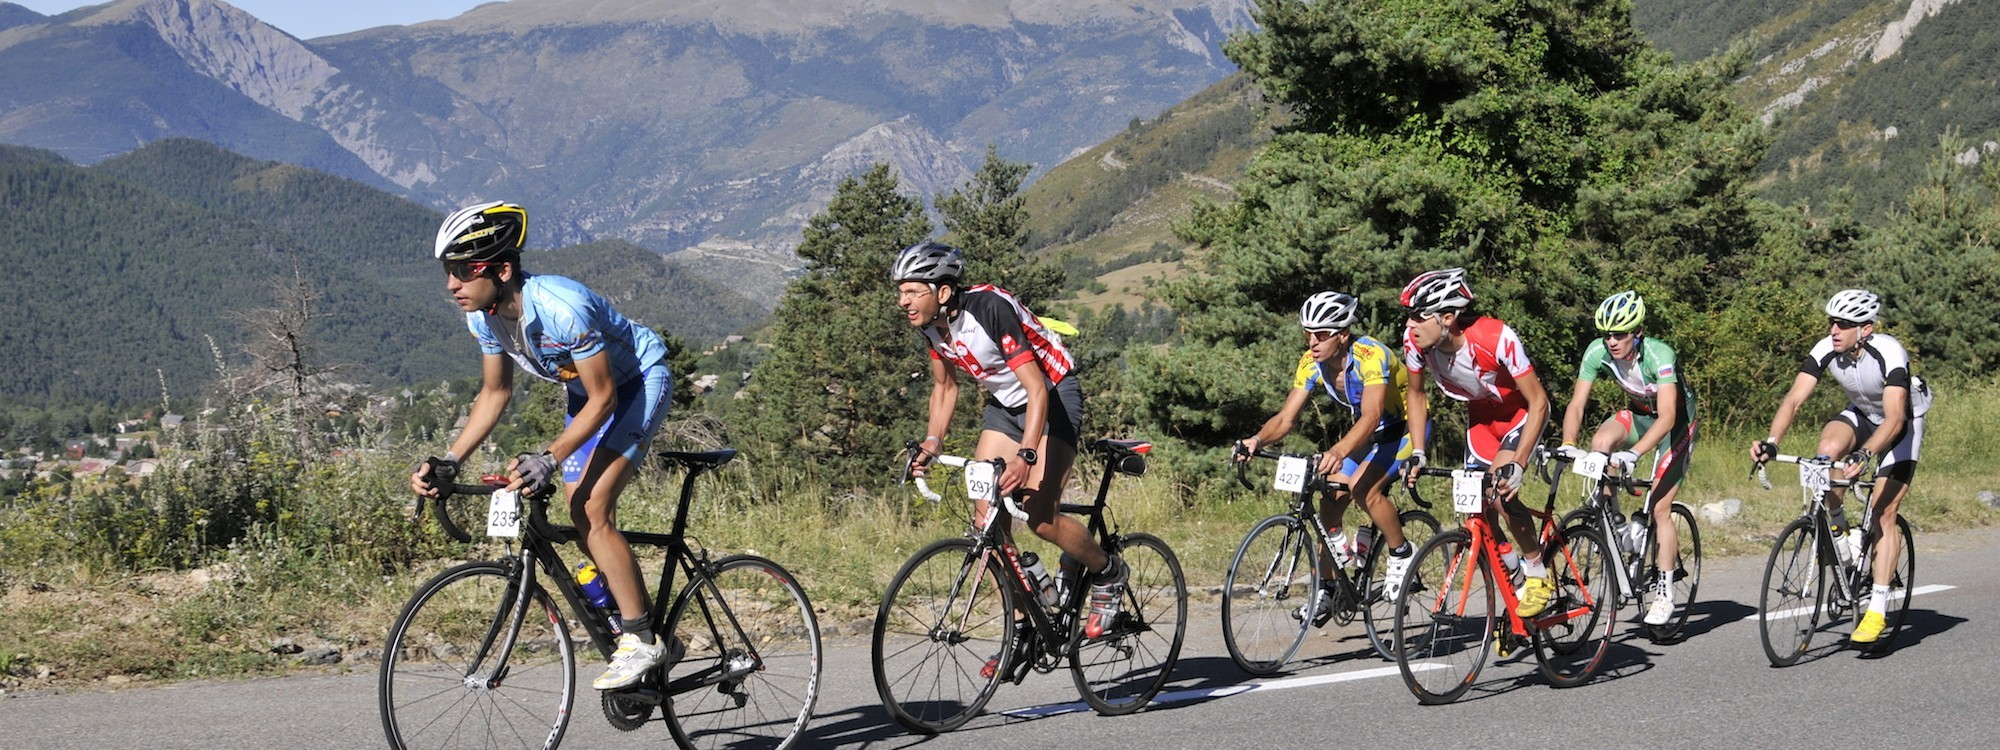 2015 Haute Route Alps goes south to north for the first time